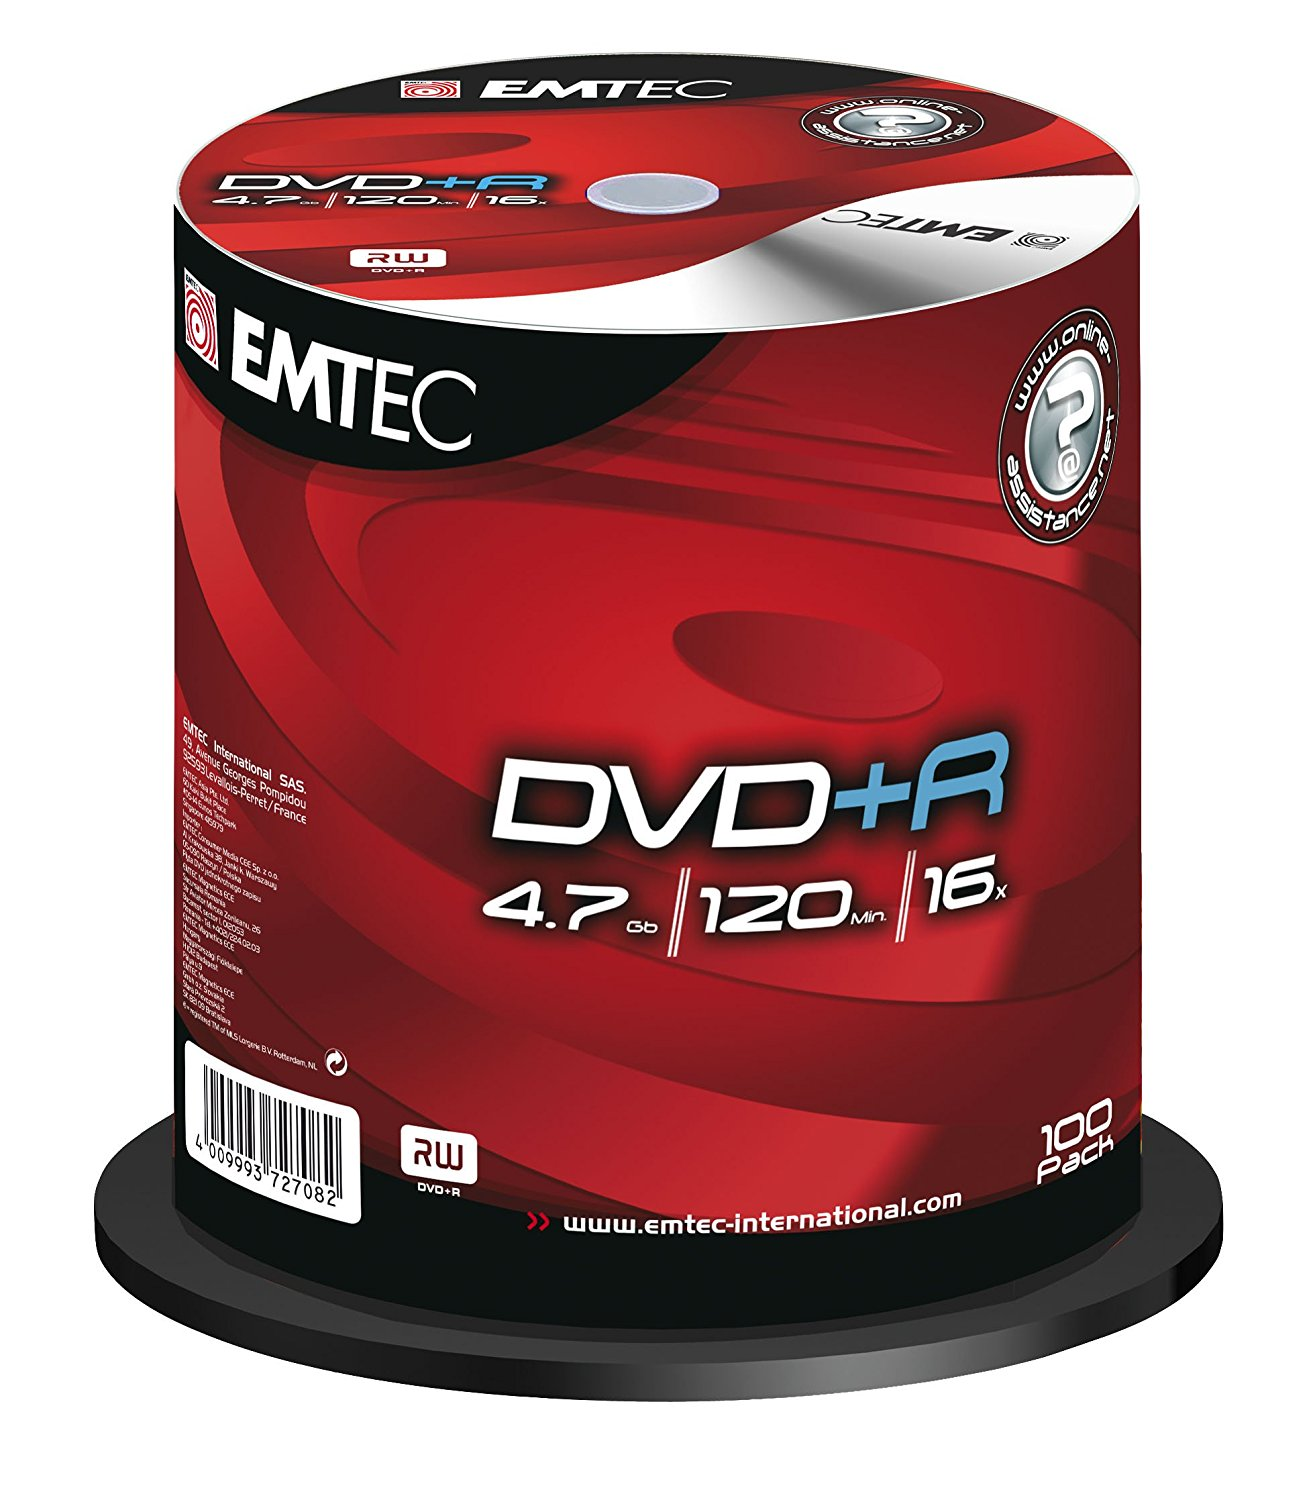 EMTEC 4.7 GB 16x Silver Single-Layer Recordable Disc DVD+R,EKOVPR4710016CB, 100-Disc Spindle (Discontinued by Manufacturer)